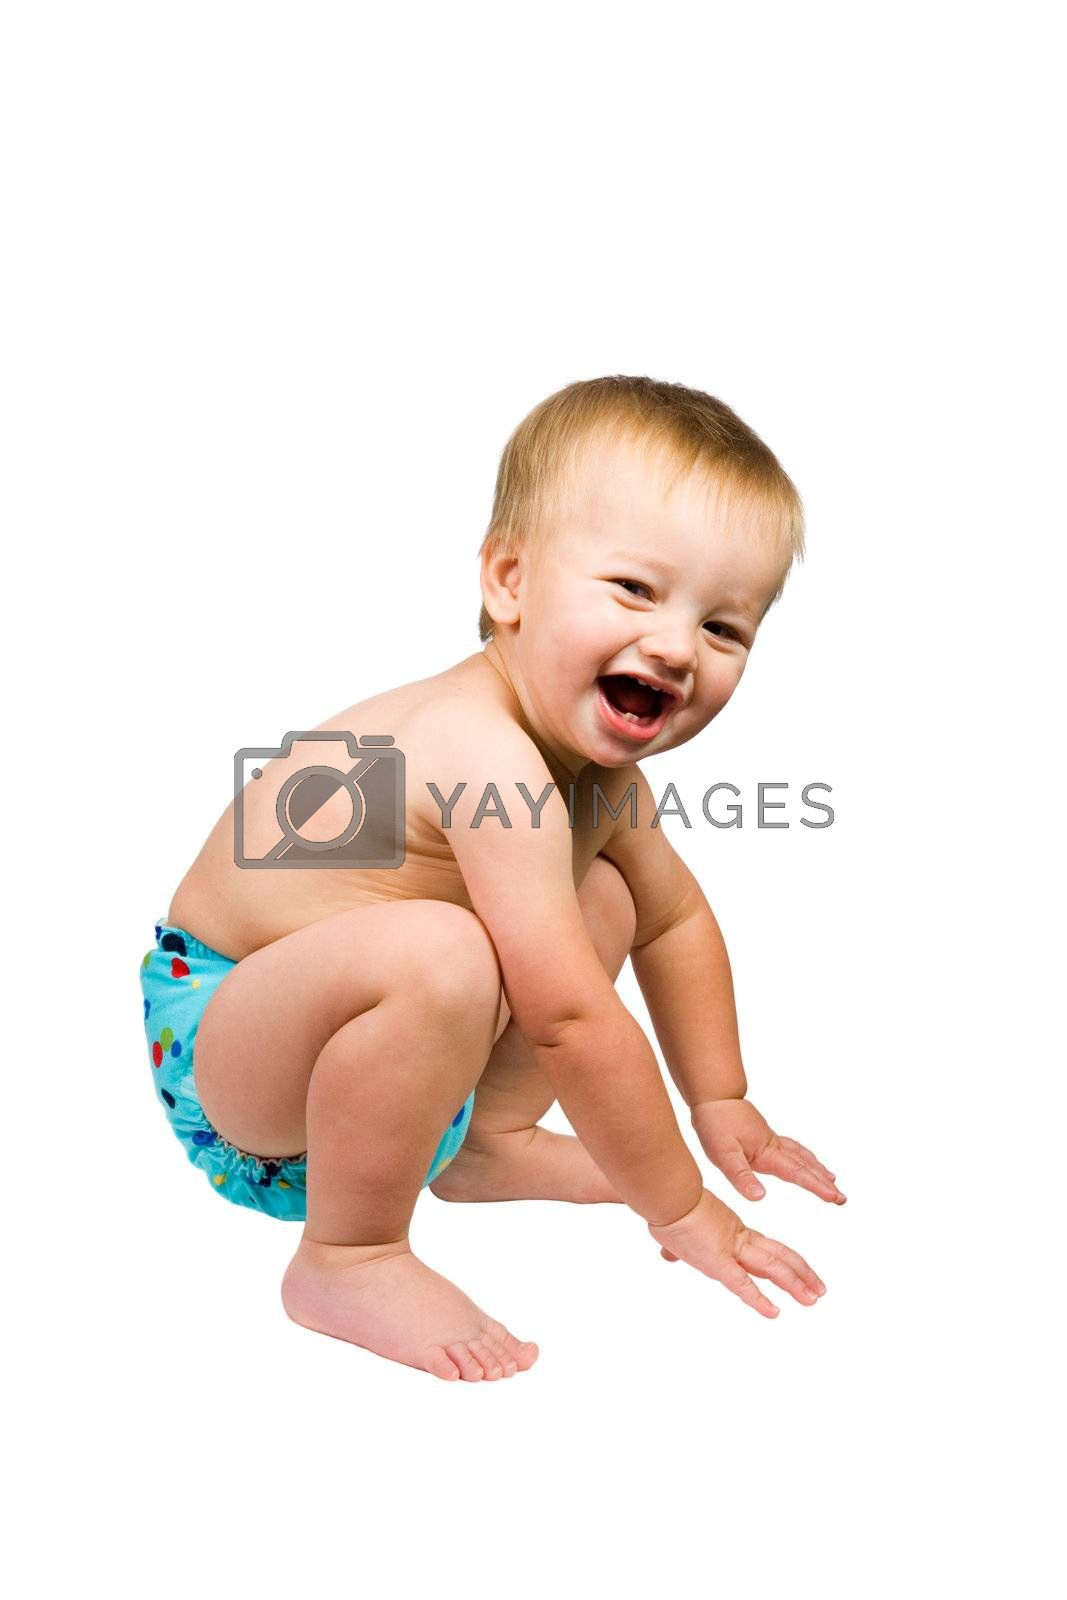 A portrait of a cute baby boy isolated wearing a cloth diaper.